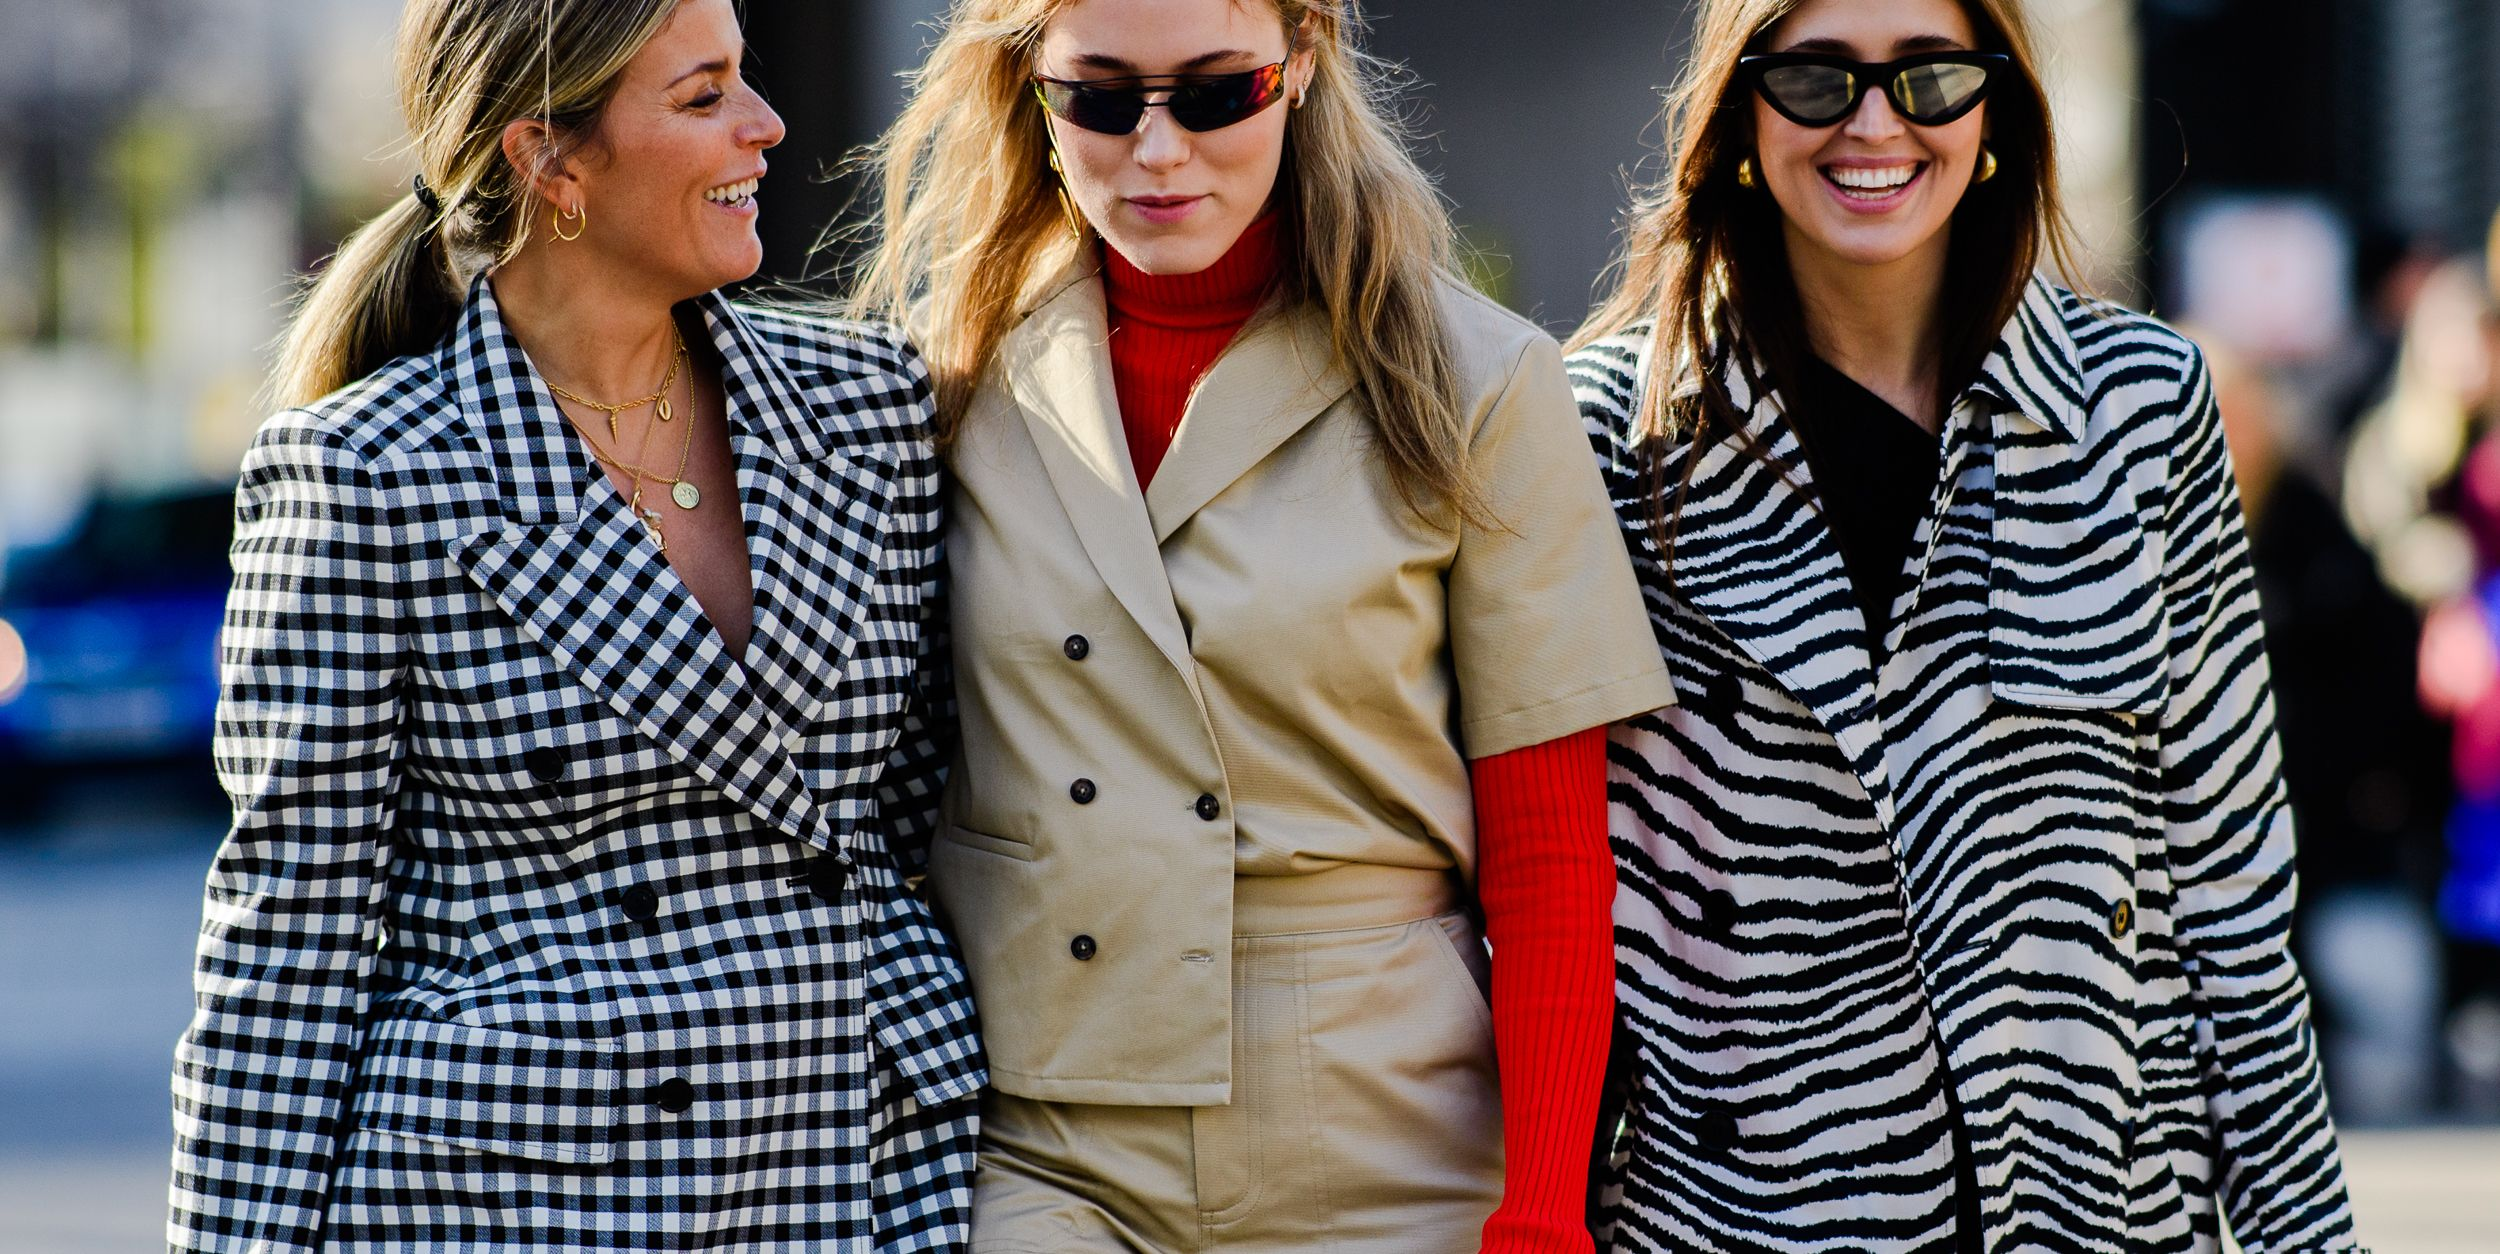 115 Unmissable Street Style Looks From London Fashion Week